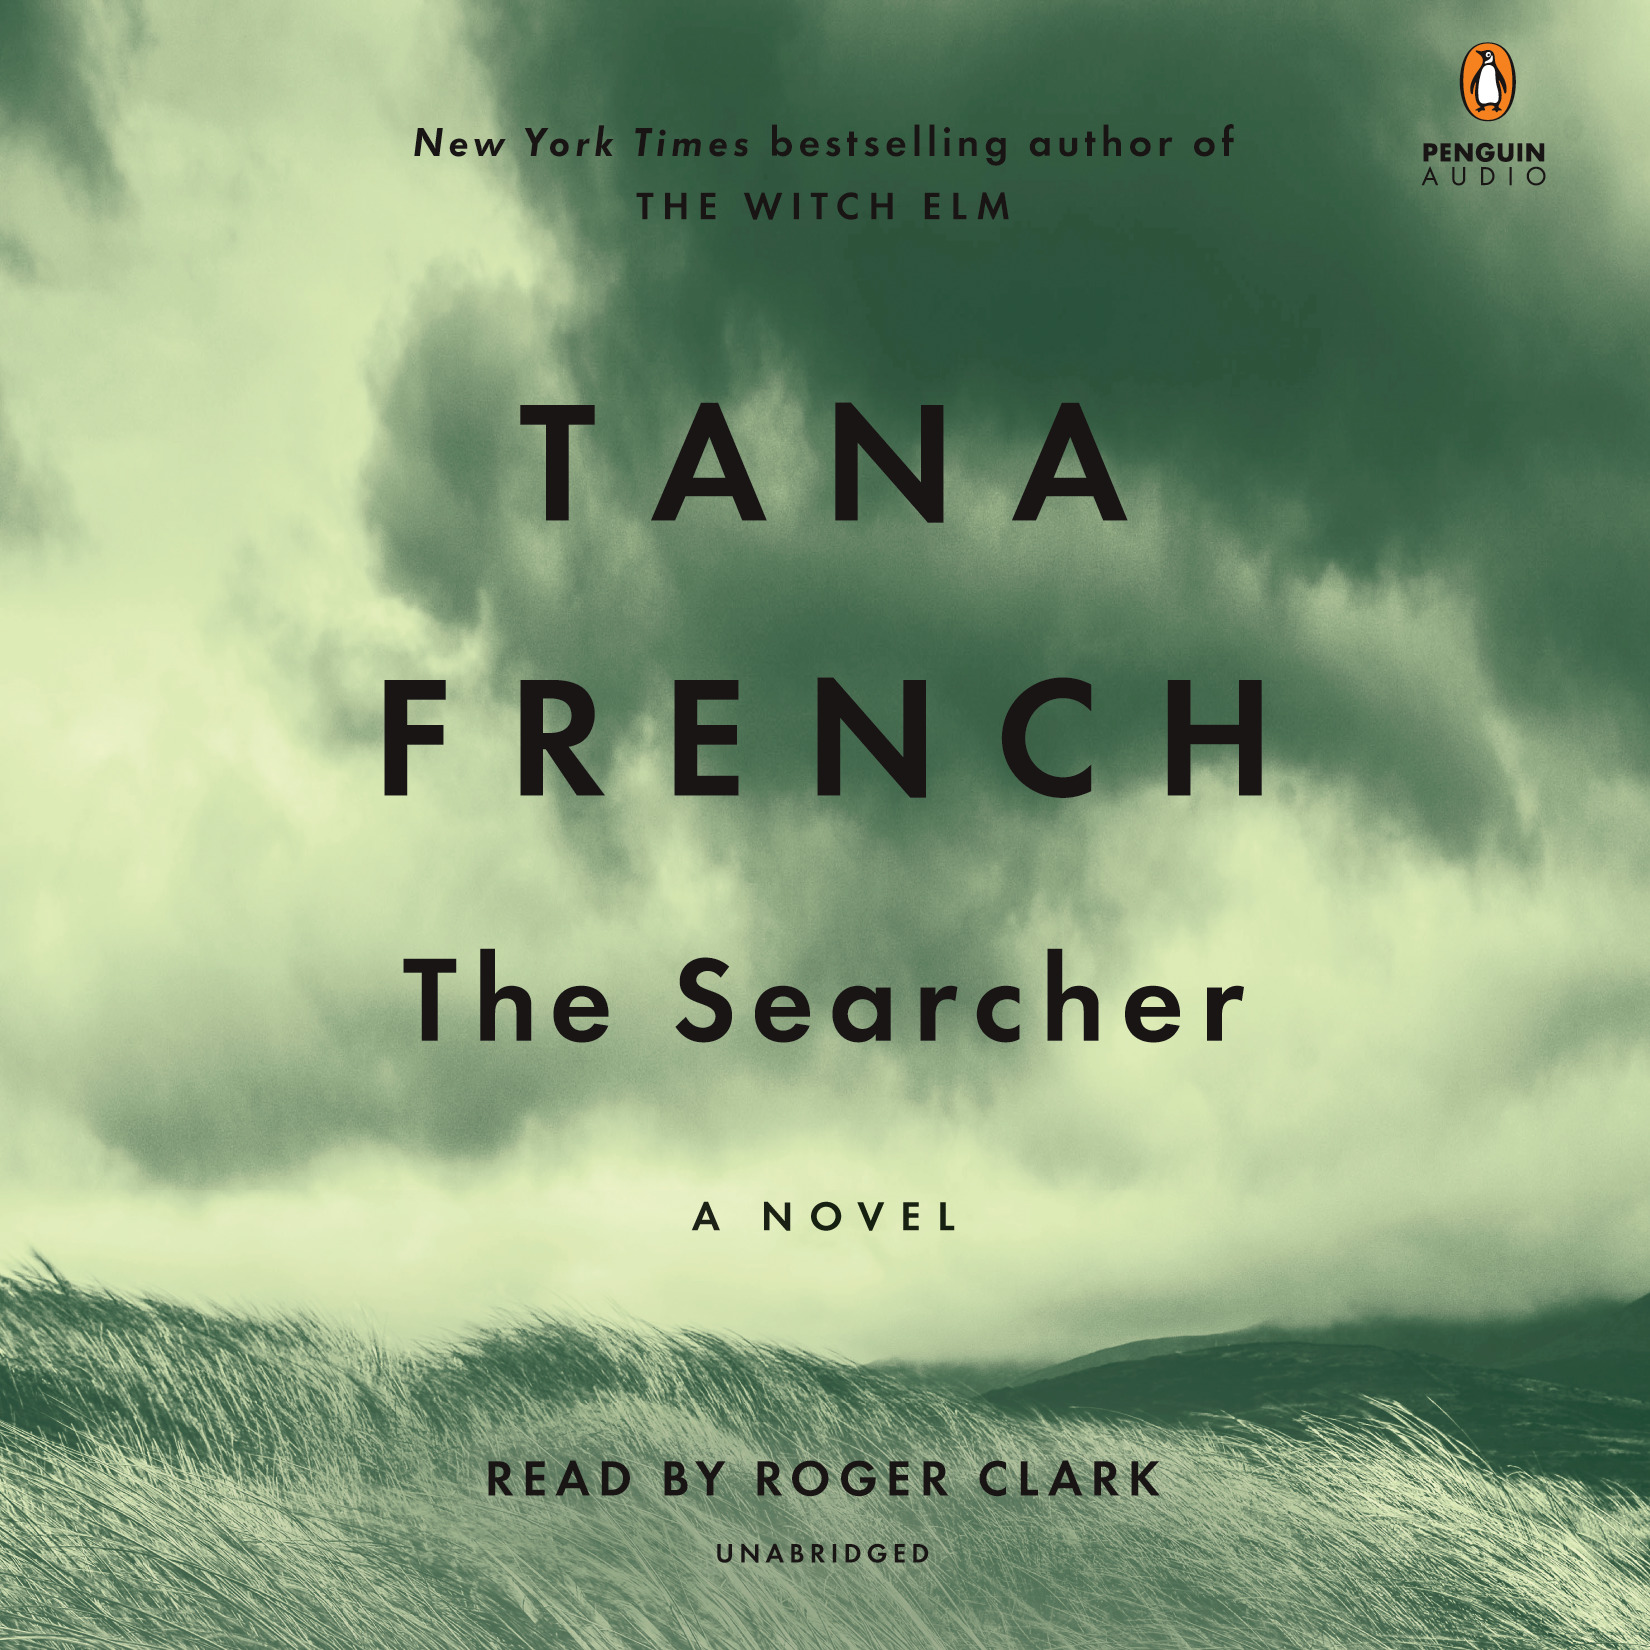 image for The Searcher: A Novel